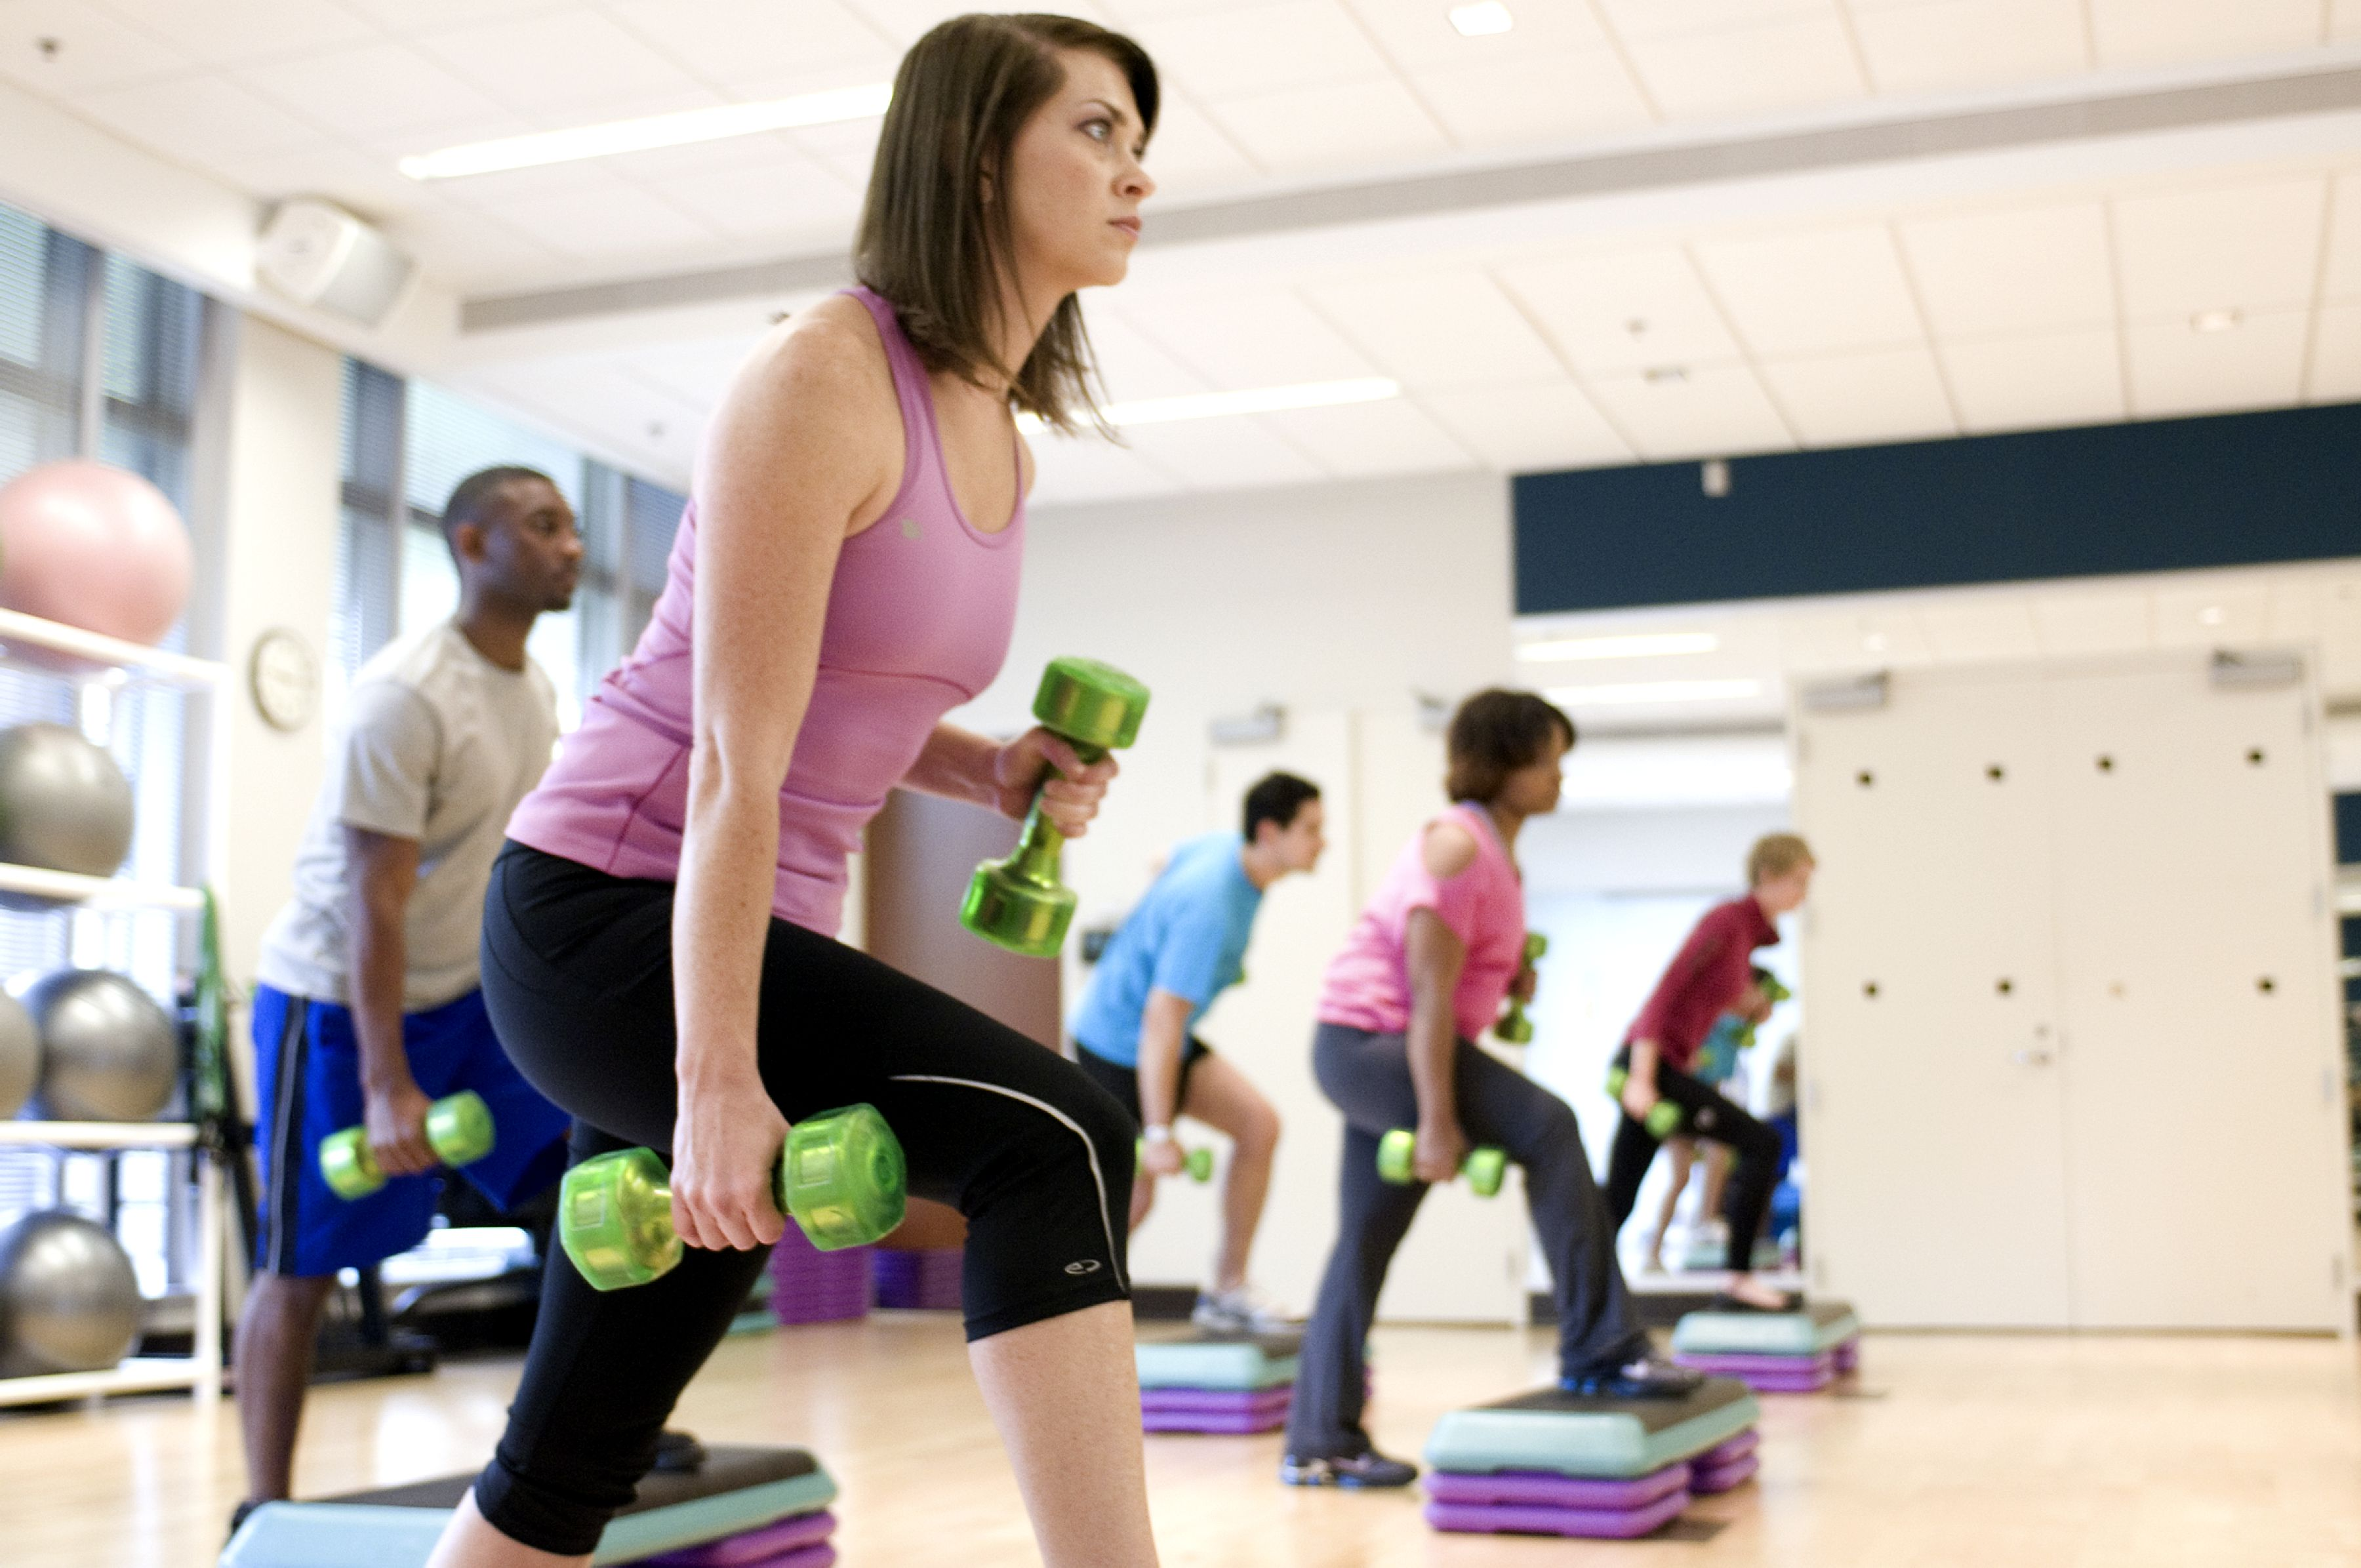 Pursing The Help of a London Personal Training Can Help You Get Results